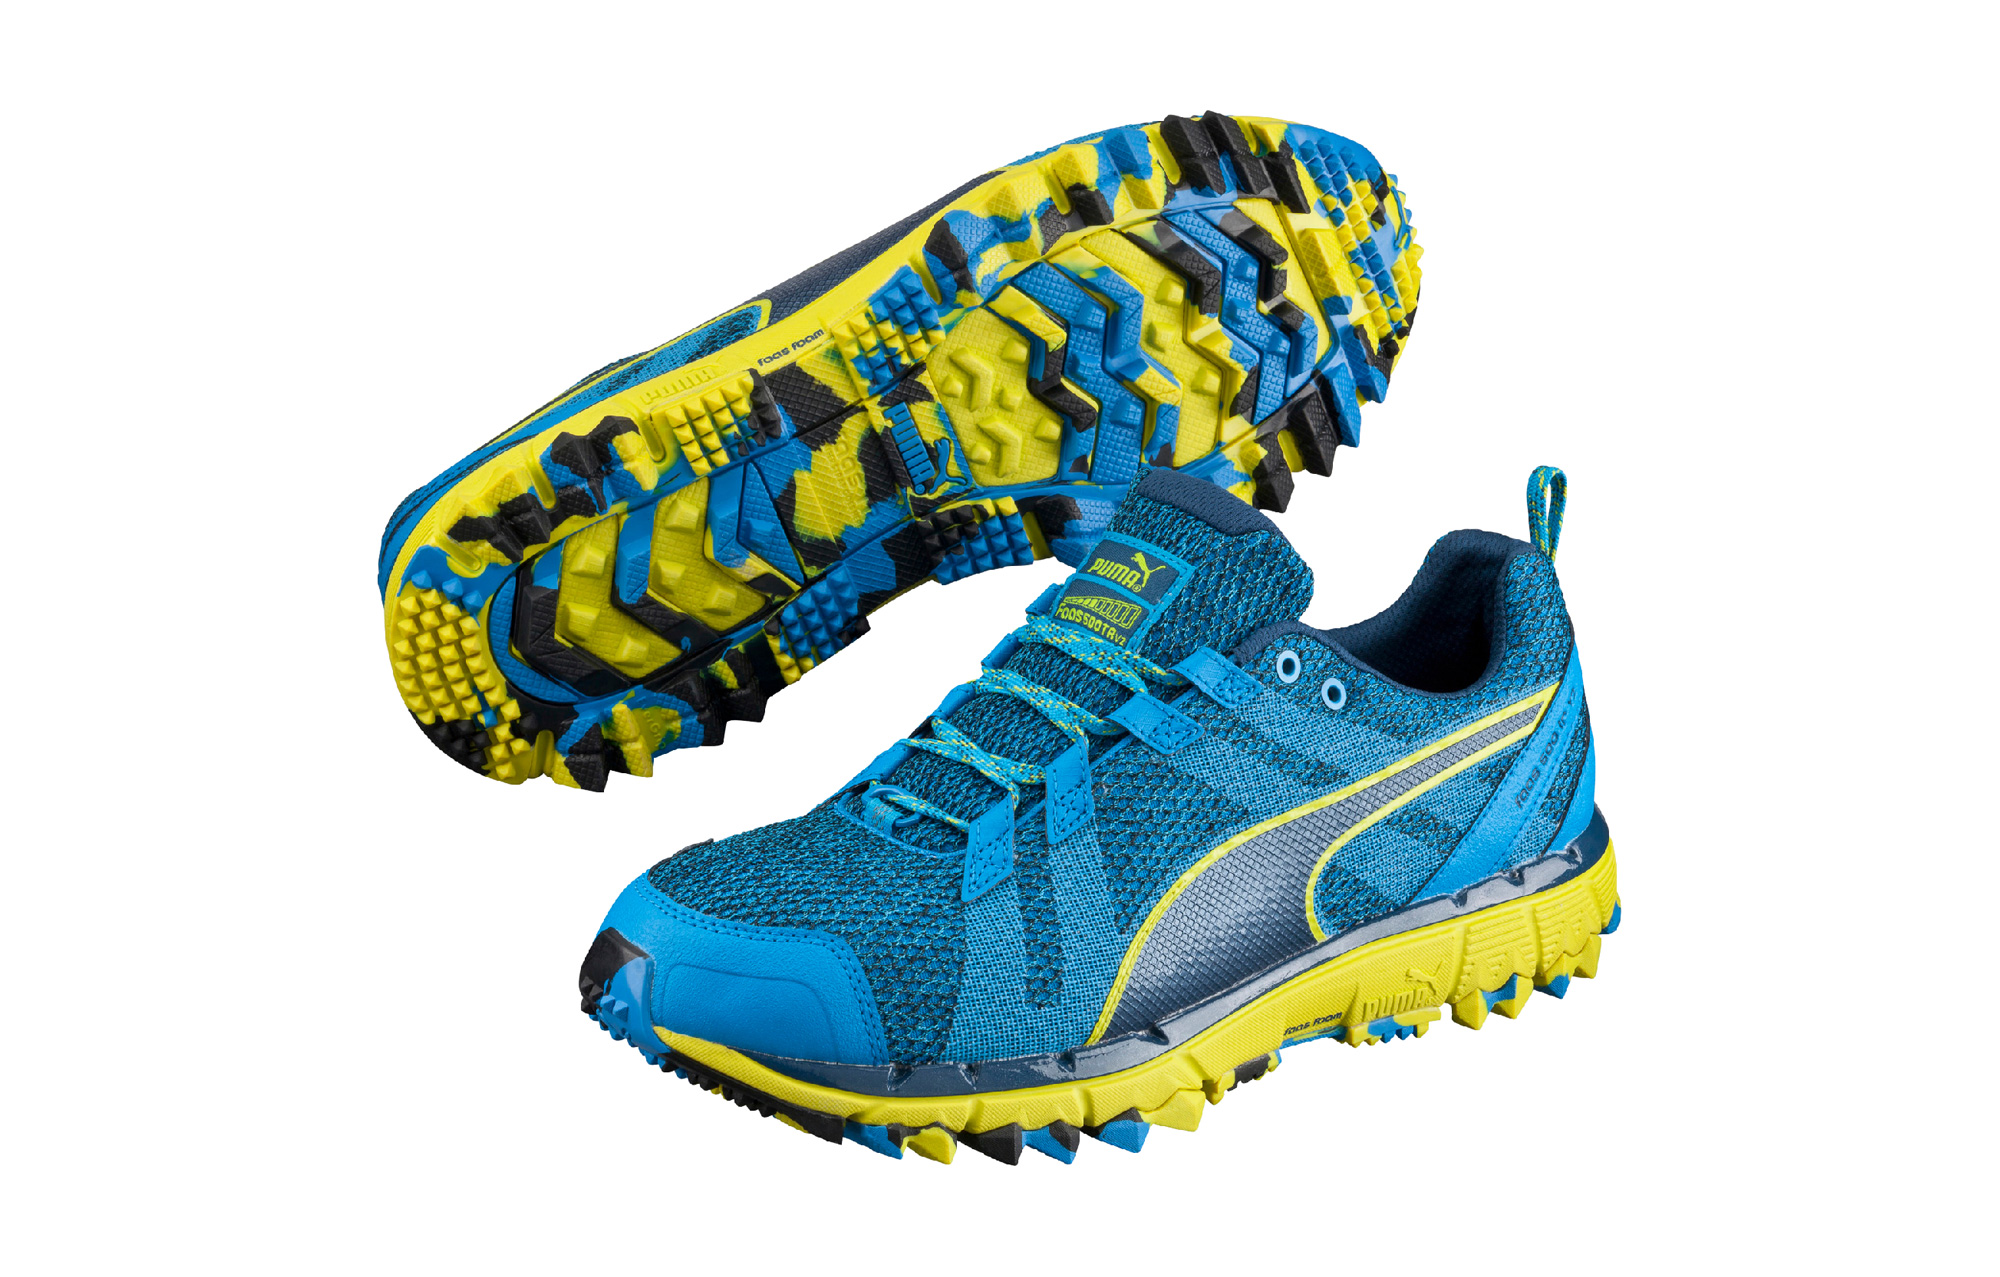 PUMA Trail Shoes Faas 500 TR V2 Blue Yellow